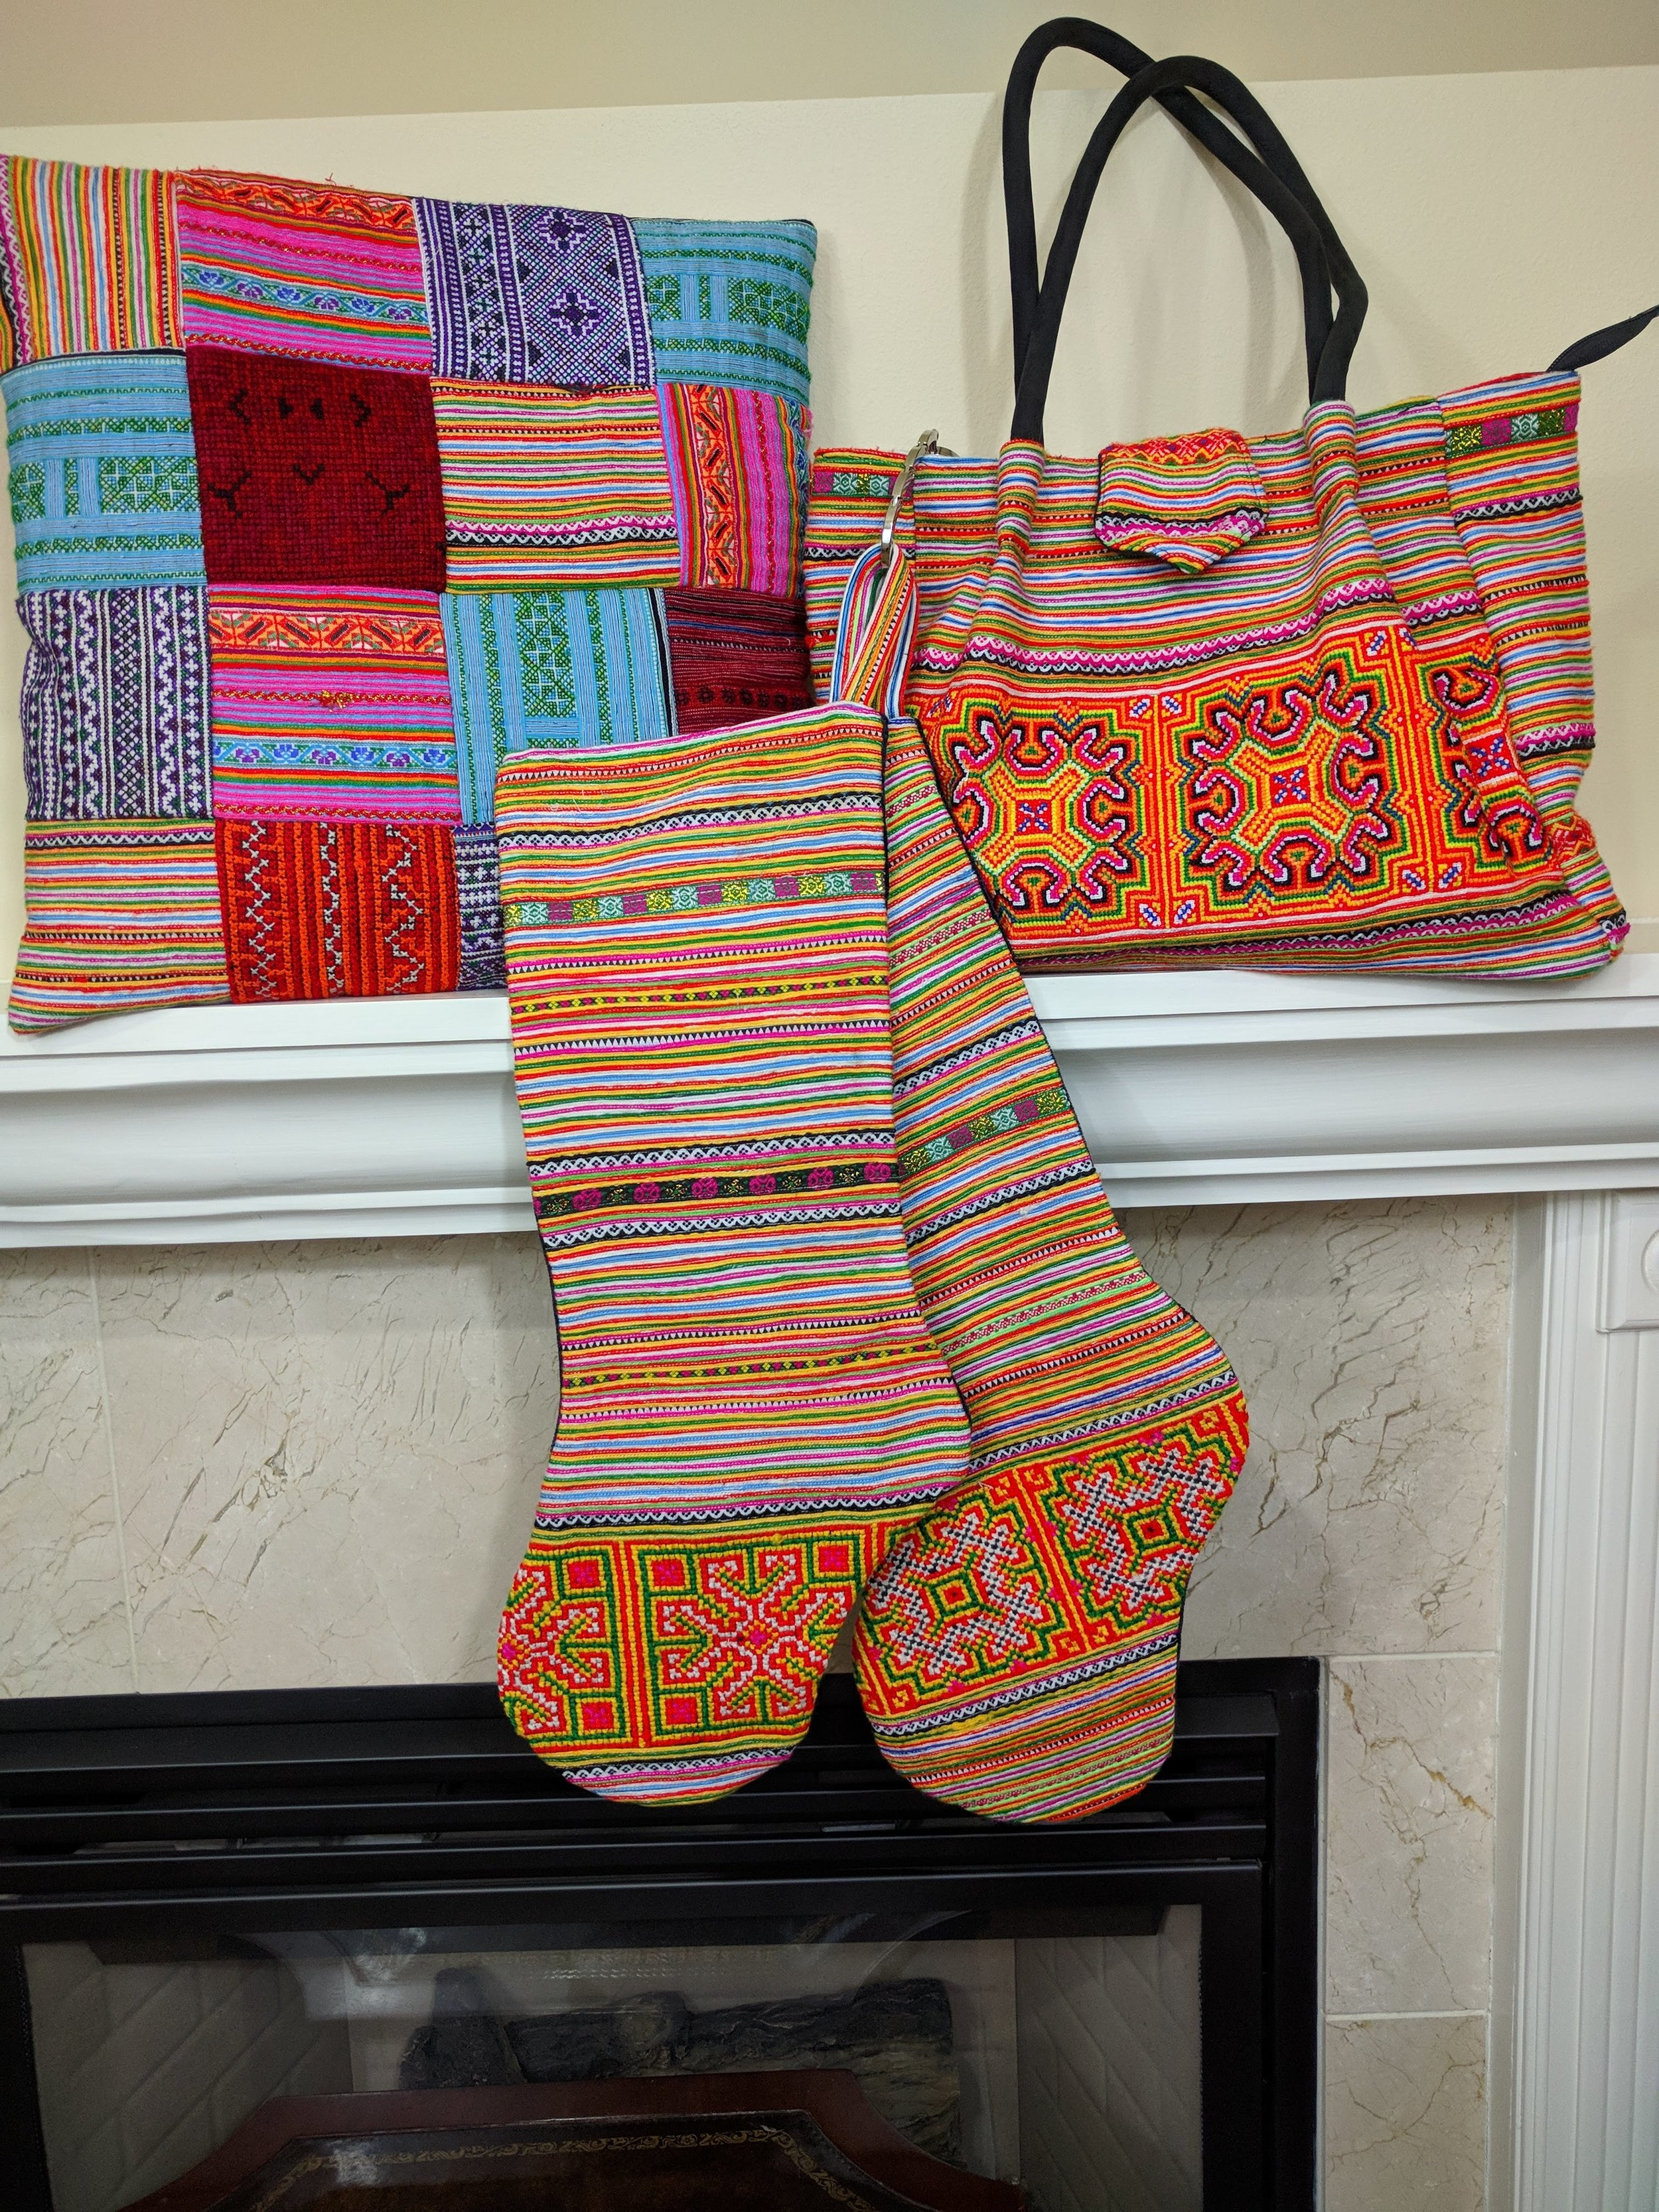 I was thrilled that the purse I purchased from Hien complements the assorted stockings so well! The pillowcase they created showcases the variety of fabrics they work with.